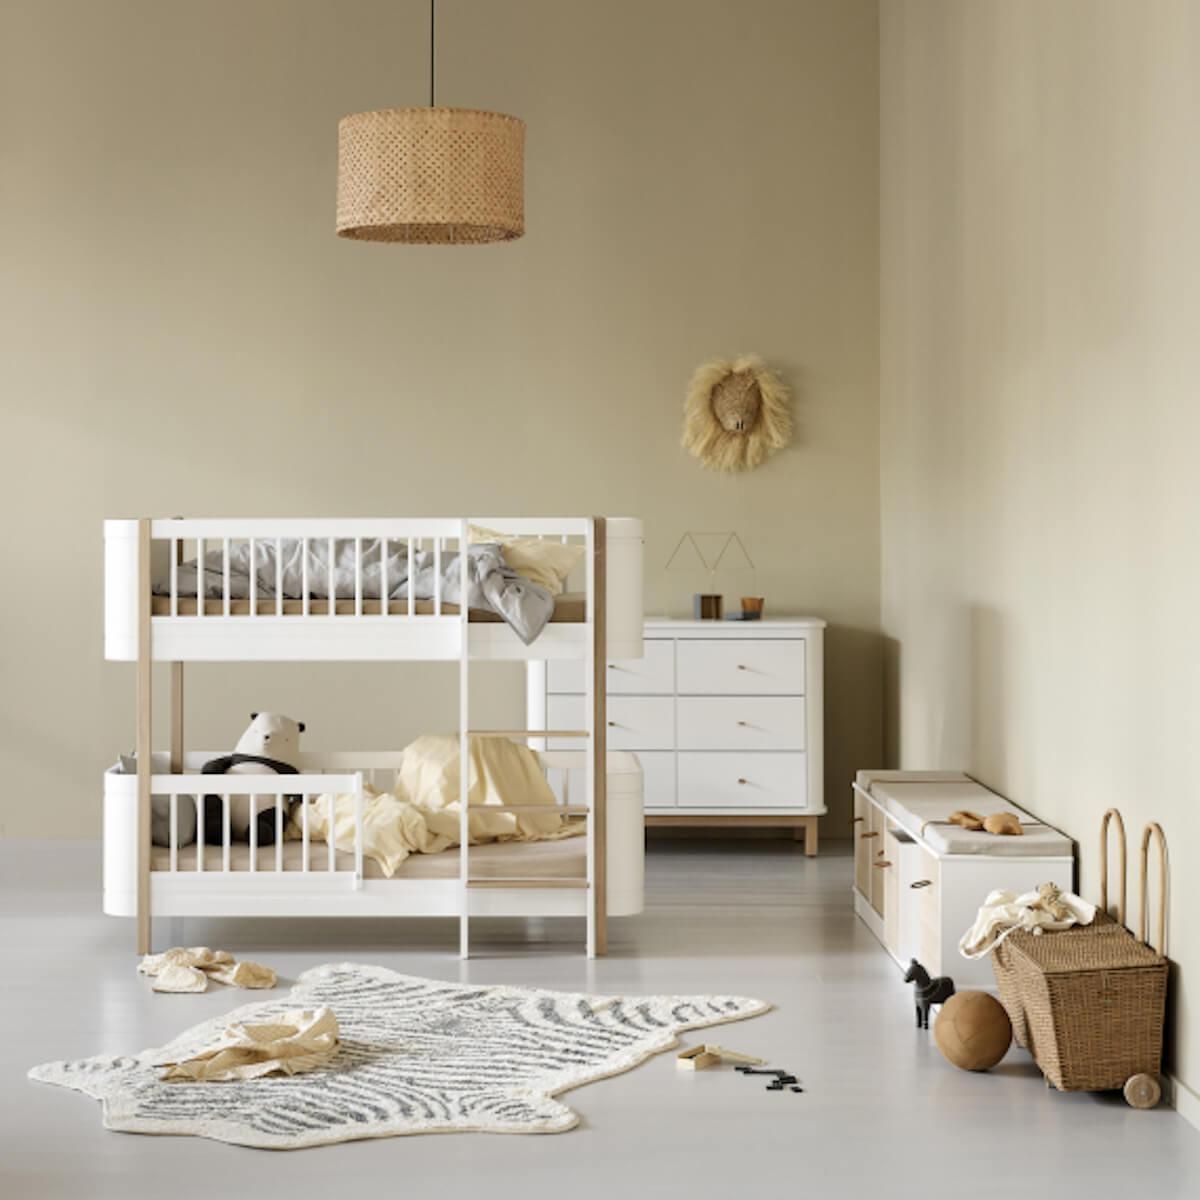 Litera Mini+ 68x162cm WOOD Oliver Furniture blanco-roble